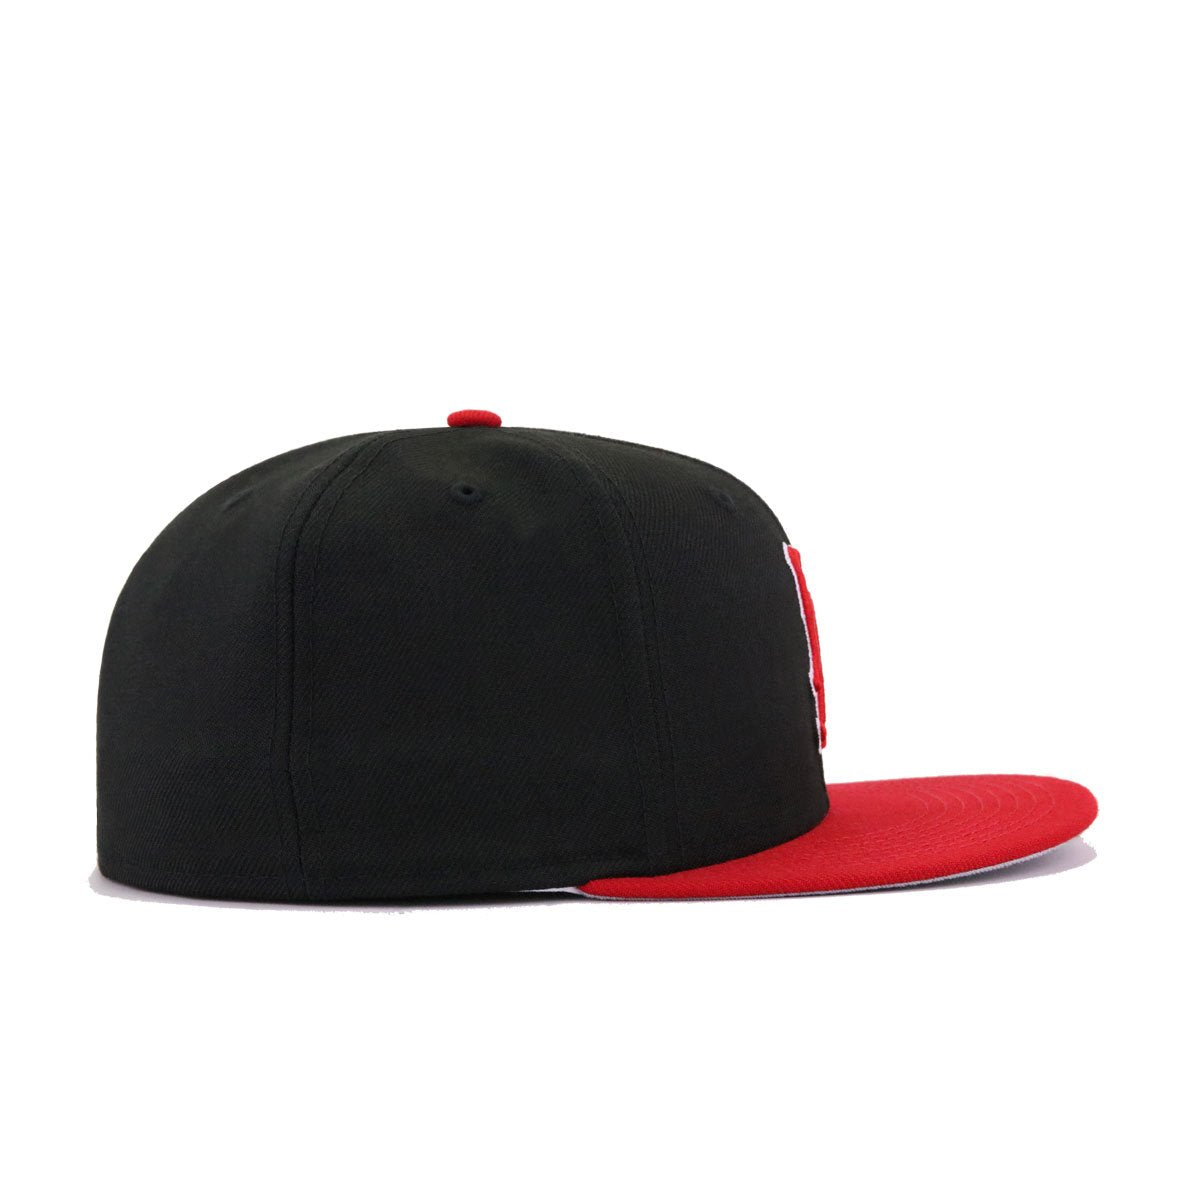 California Angels Black Scarlet Cooperstown New Era 59Fifty Fitted